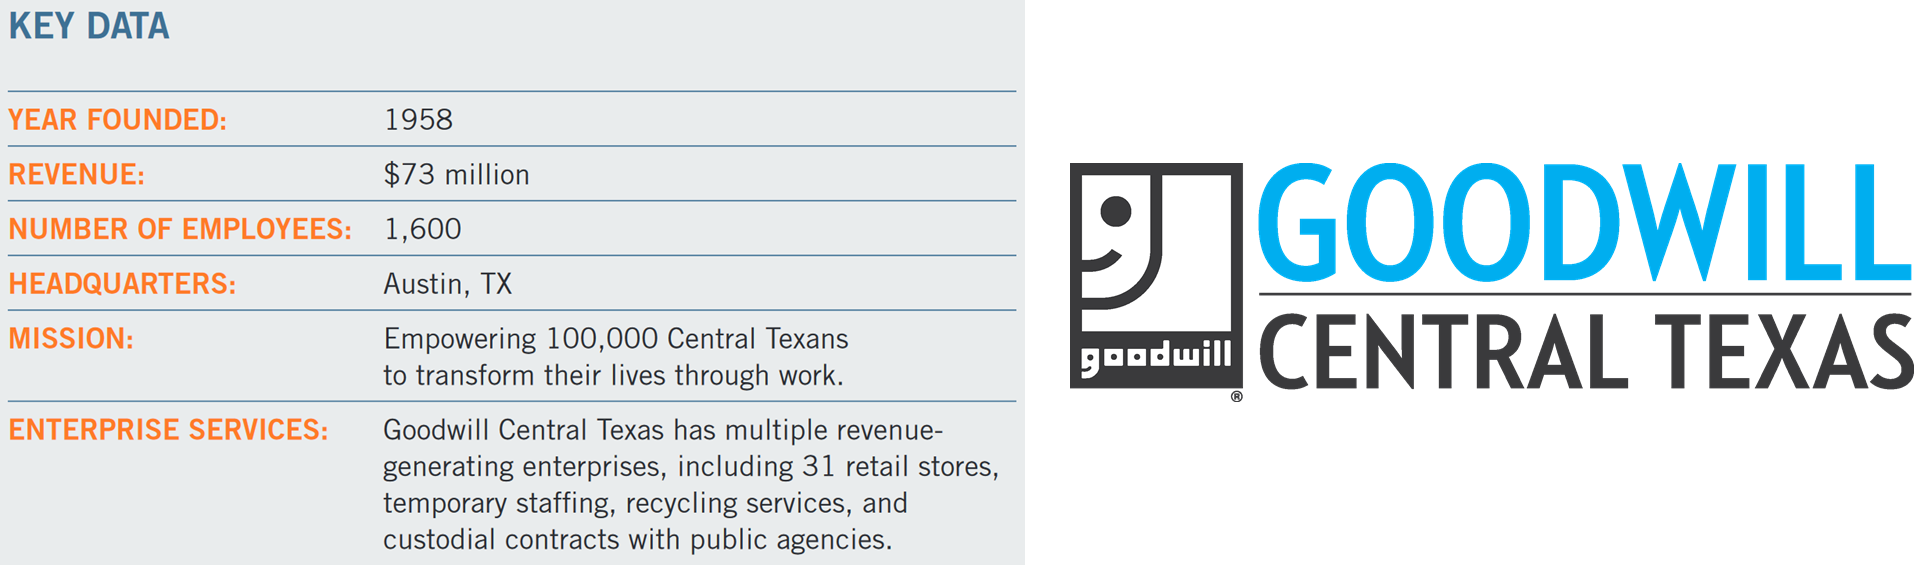 Goodwill Key Info